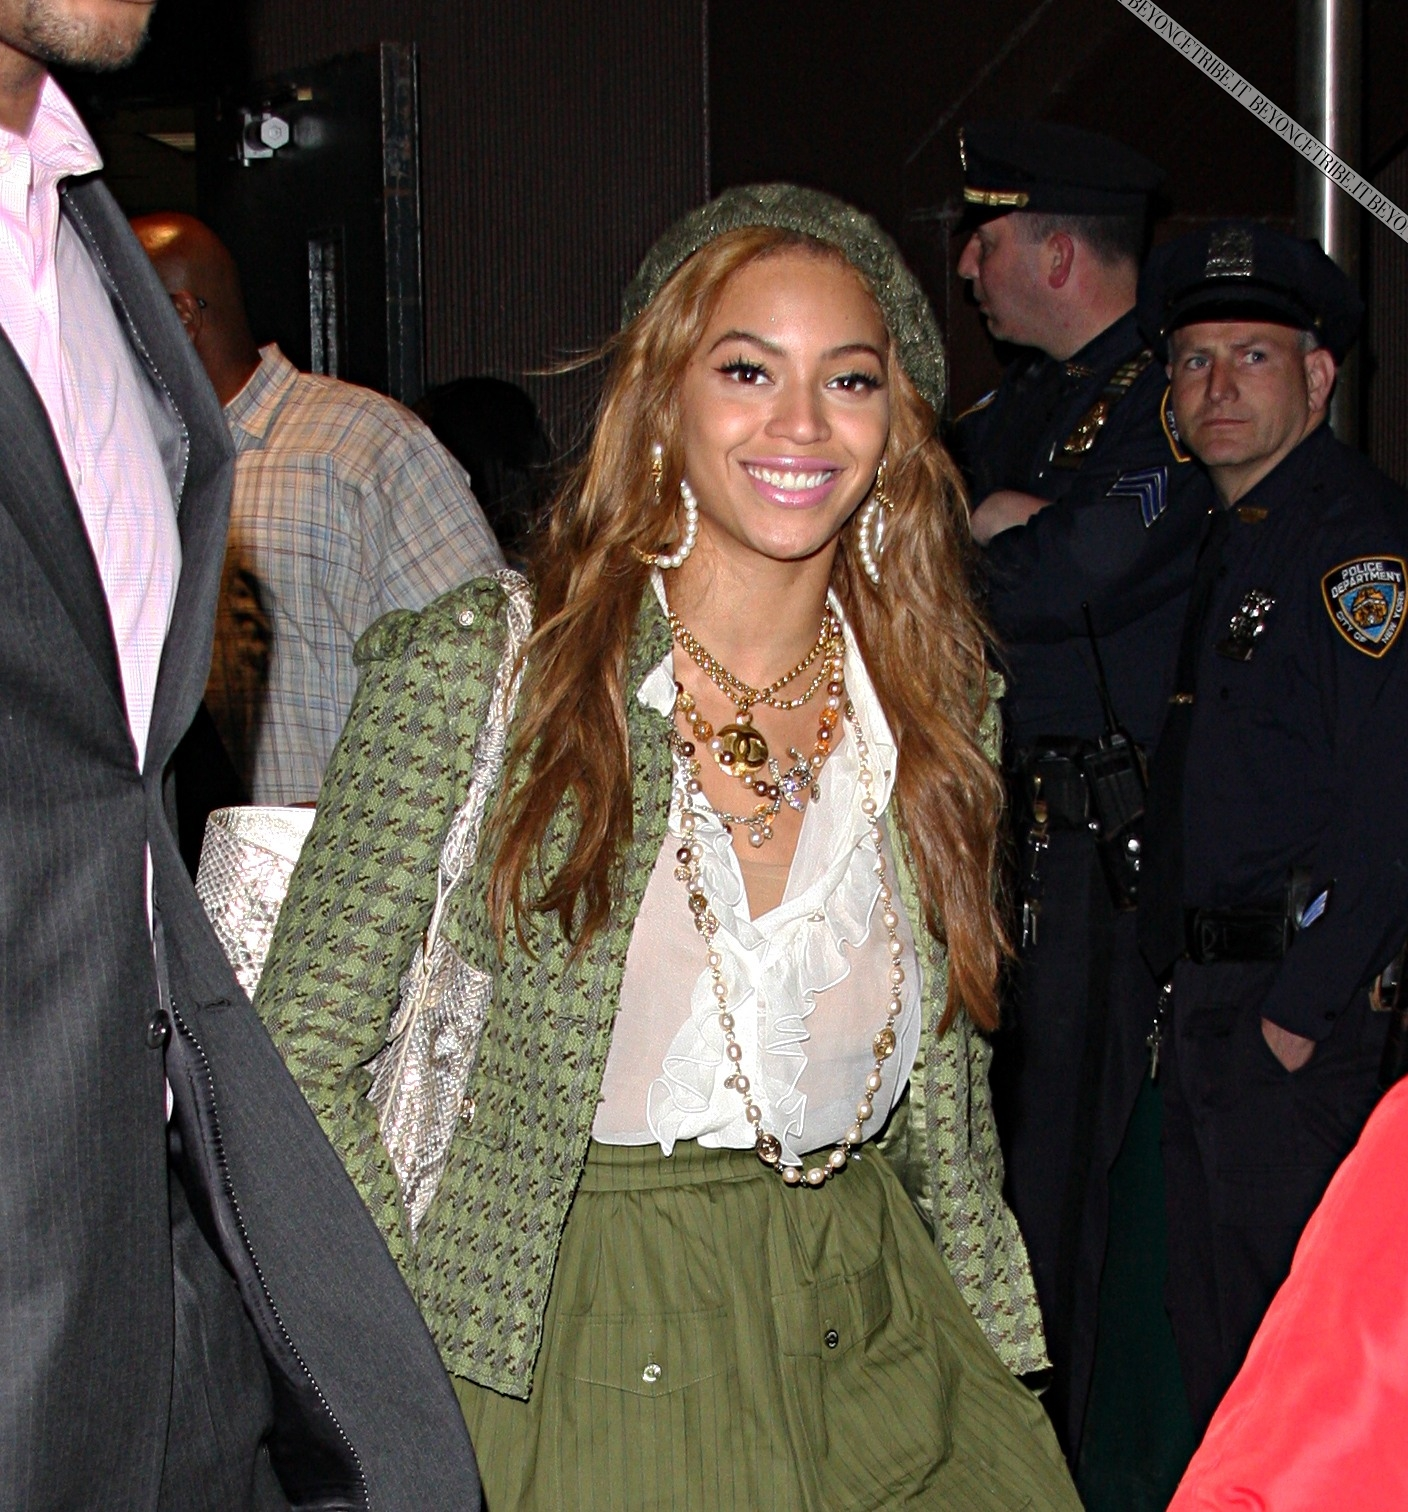 16964_Beyonce_Knowles_leaves_Madison_Square_Garden_CU_ISA_130508_2_122_1158lo